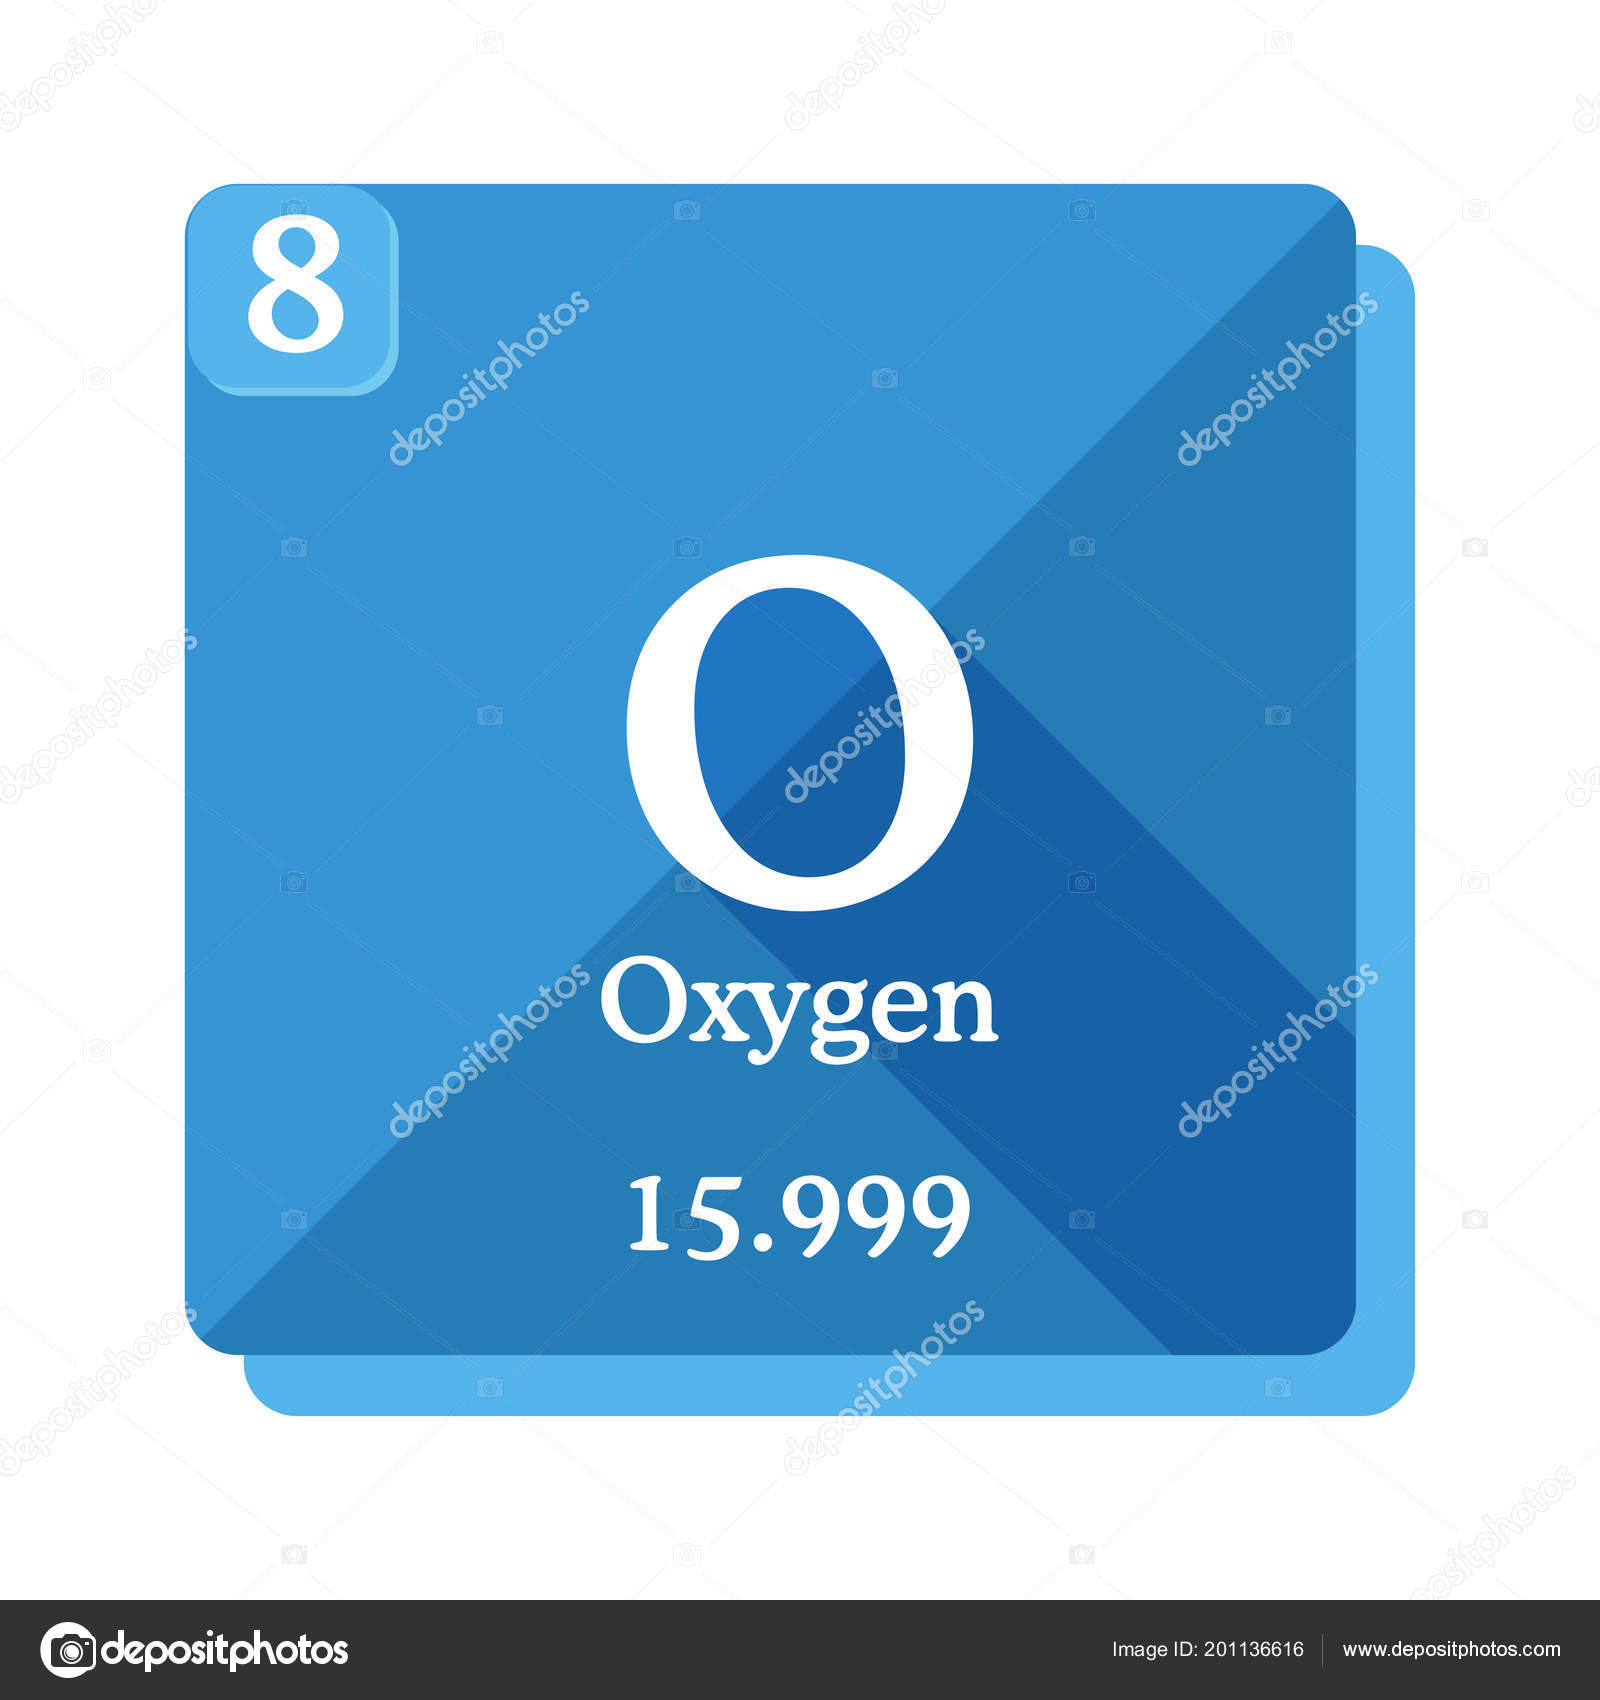 Oxygen Chemical Element Periodic Table Elements Oxygen Icon Blue